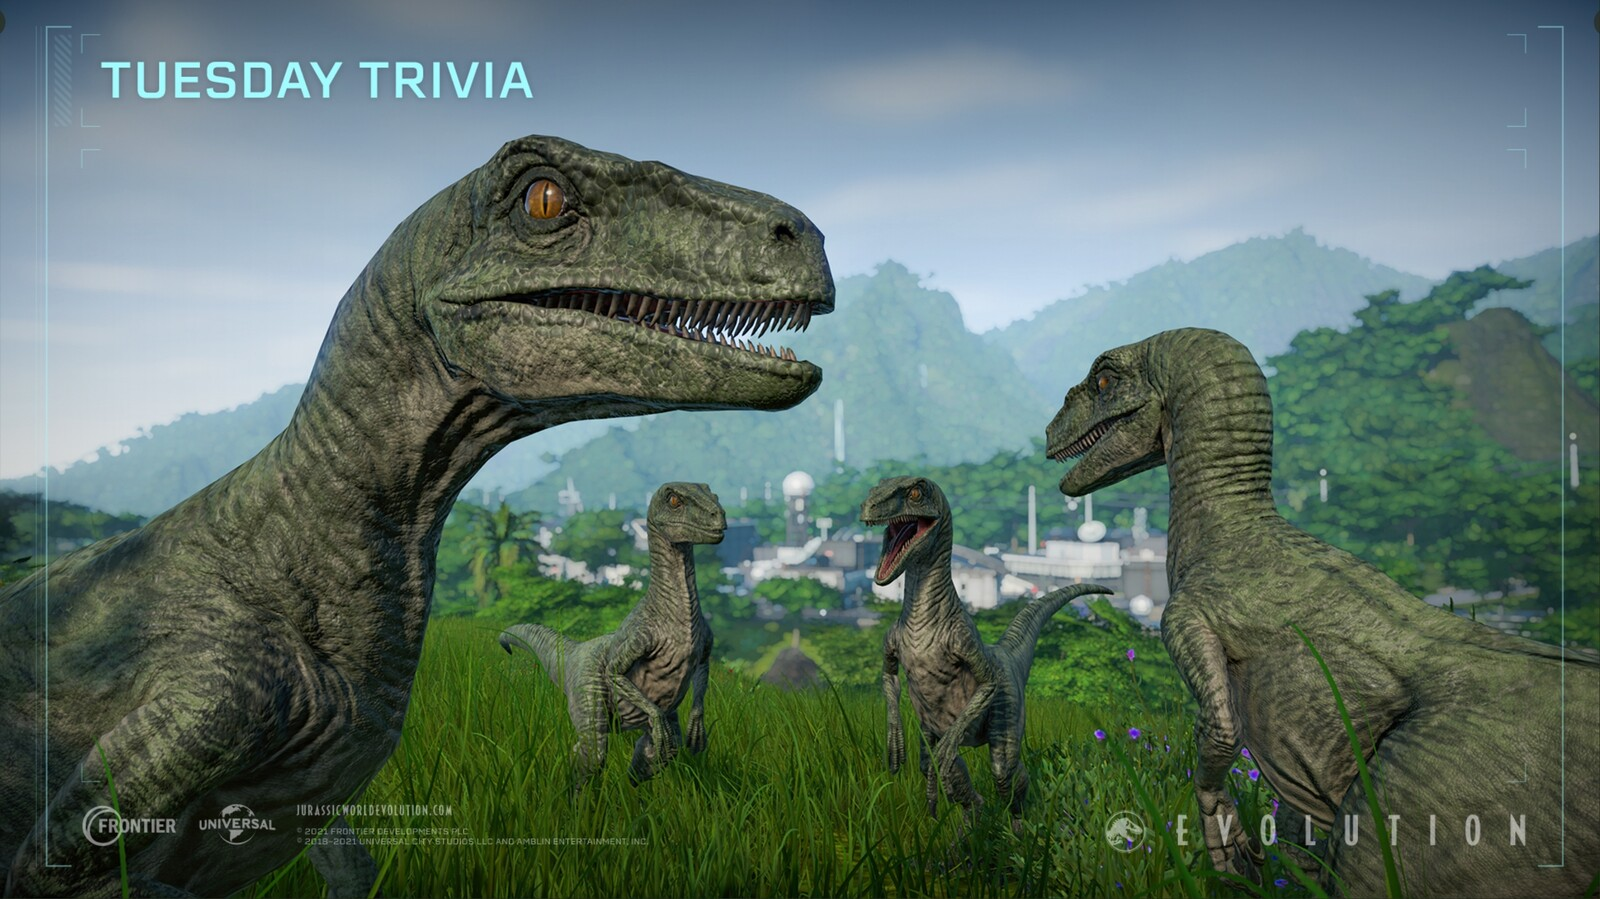 Jurassic World Evolution - Tuesday Trivia Raptors